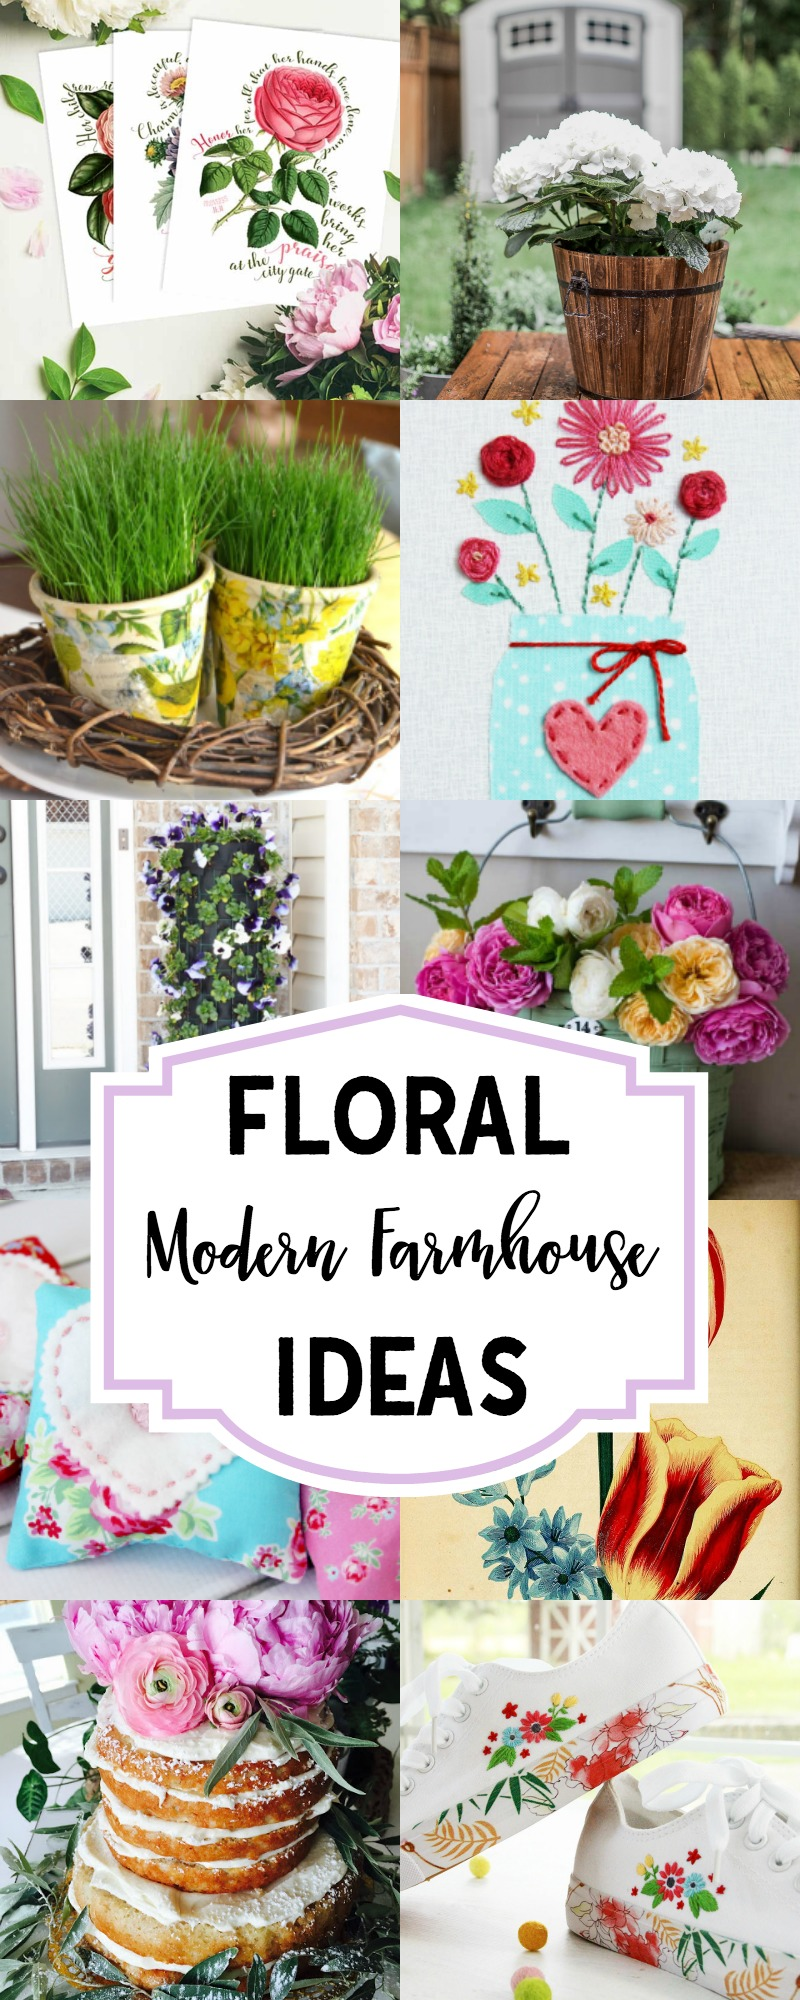 Floral Modern Farmhouse Ideas